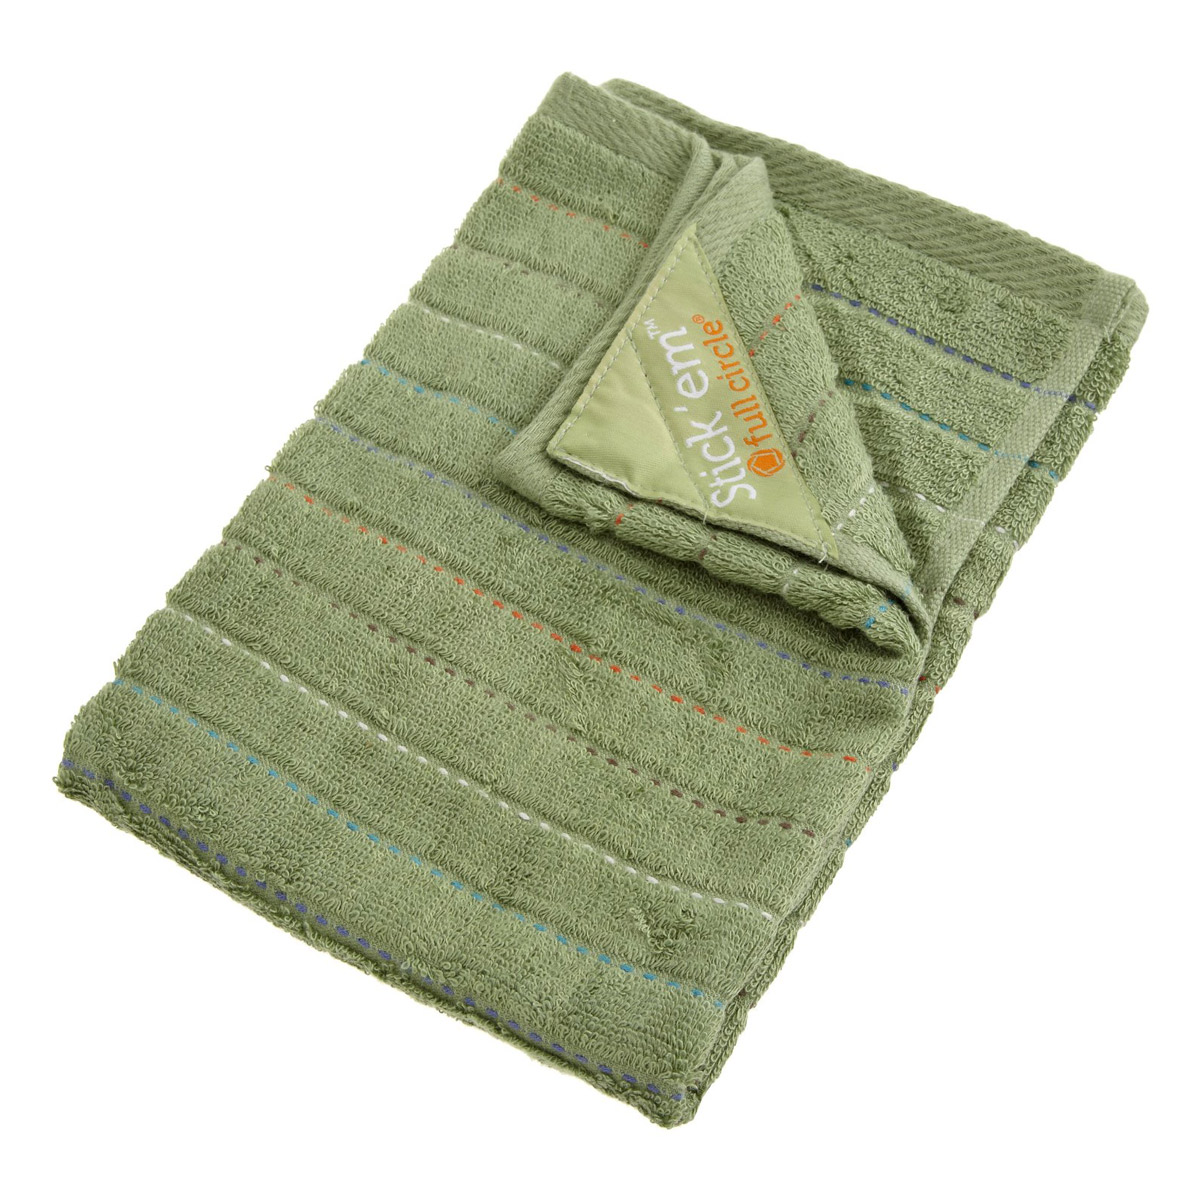 Magnetic Kitchen Towels The Green Head